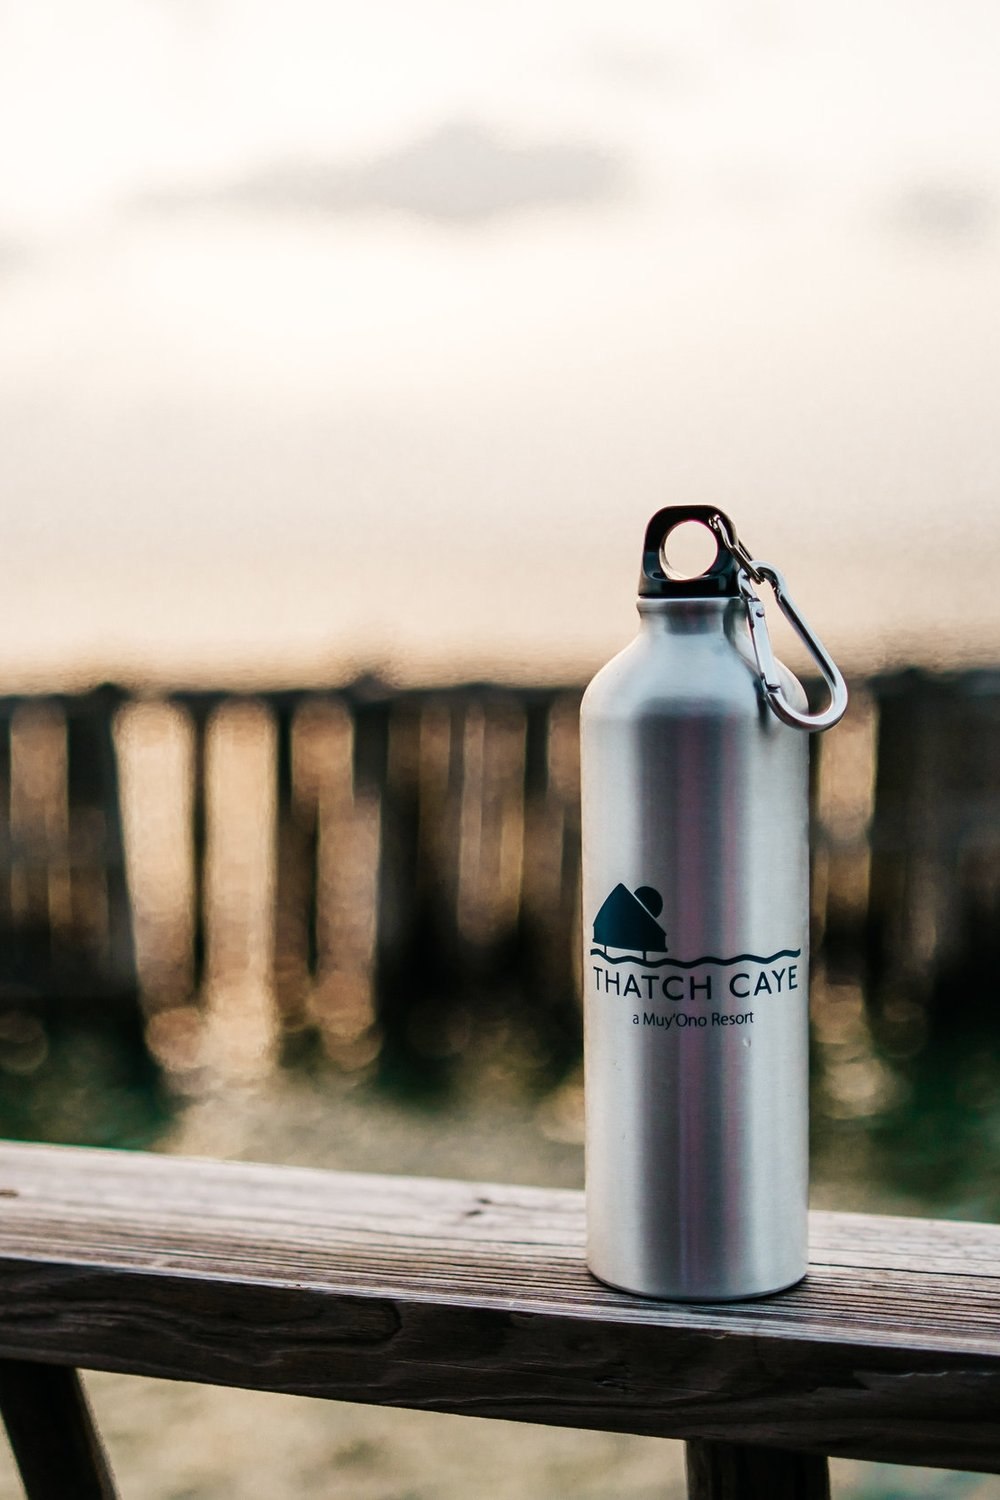 WASTE - We're decreasing our carbon footprint by phasing out Styrofoam and plastic and introducing bio-degradable or reusable solutions. Guests are also given reusable water bottles to use during and after their stay.